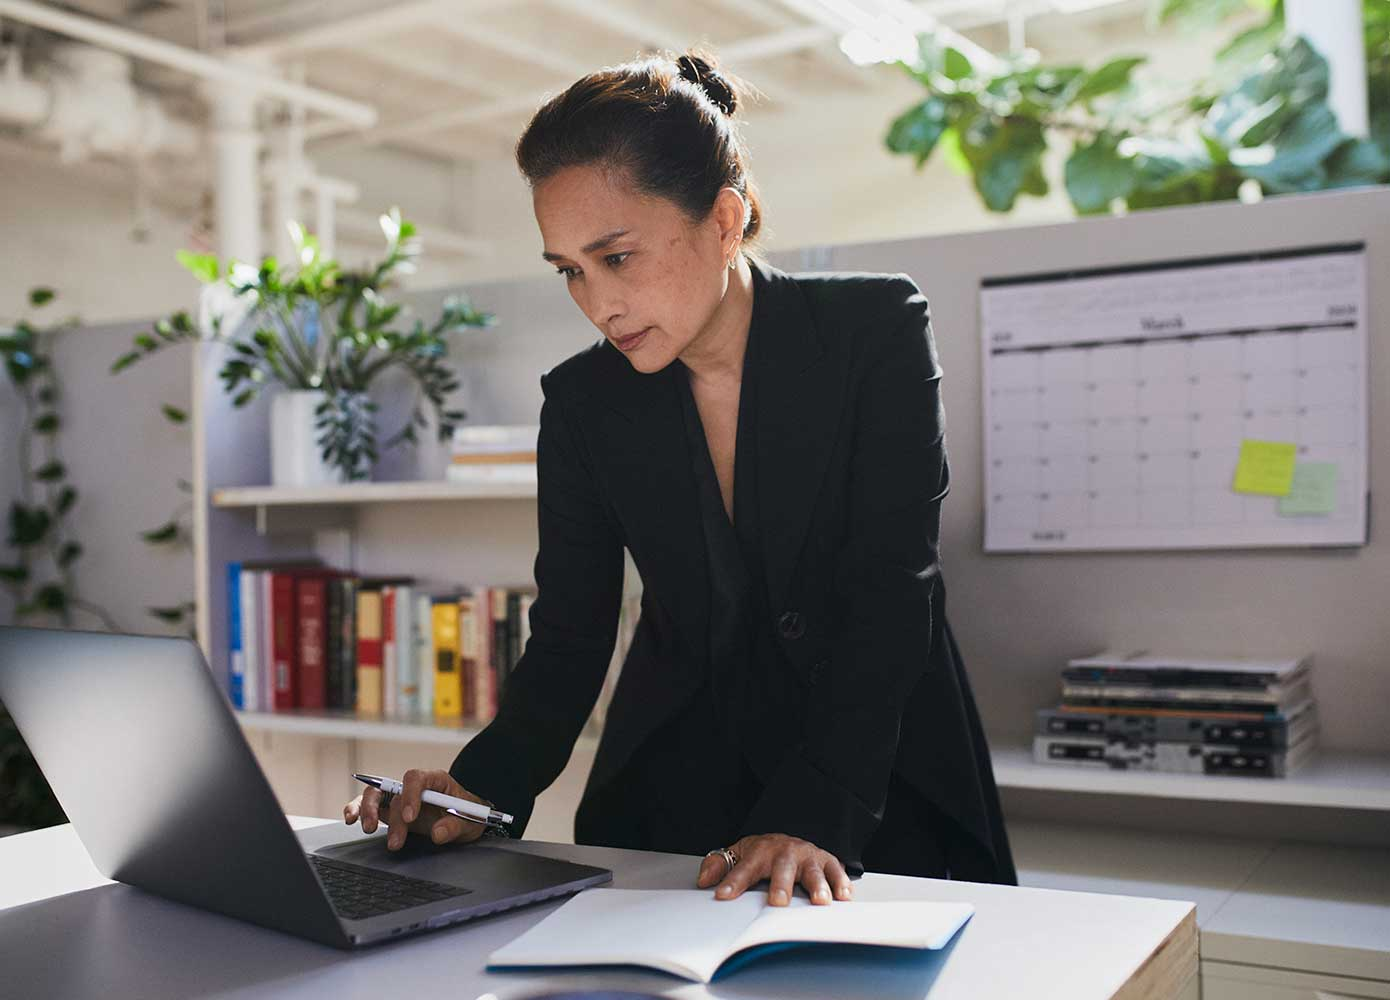 Woman standing and looking into a laptop